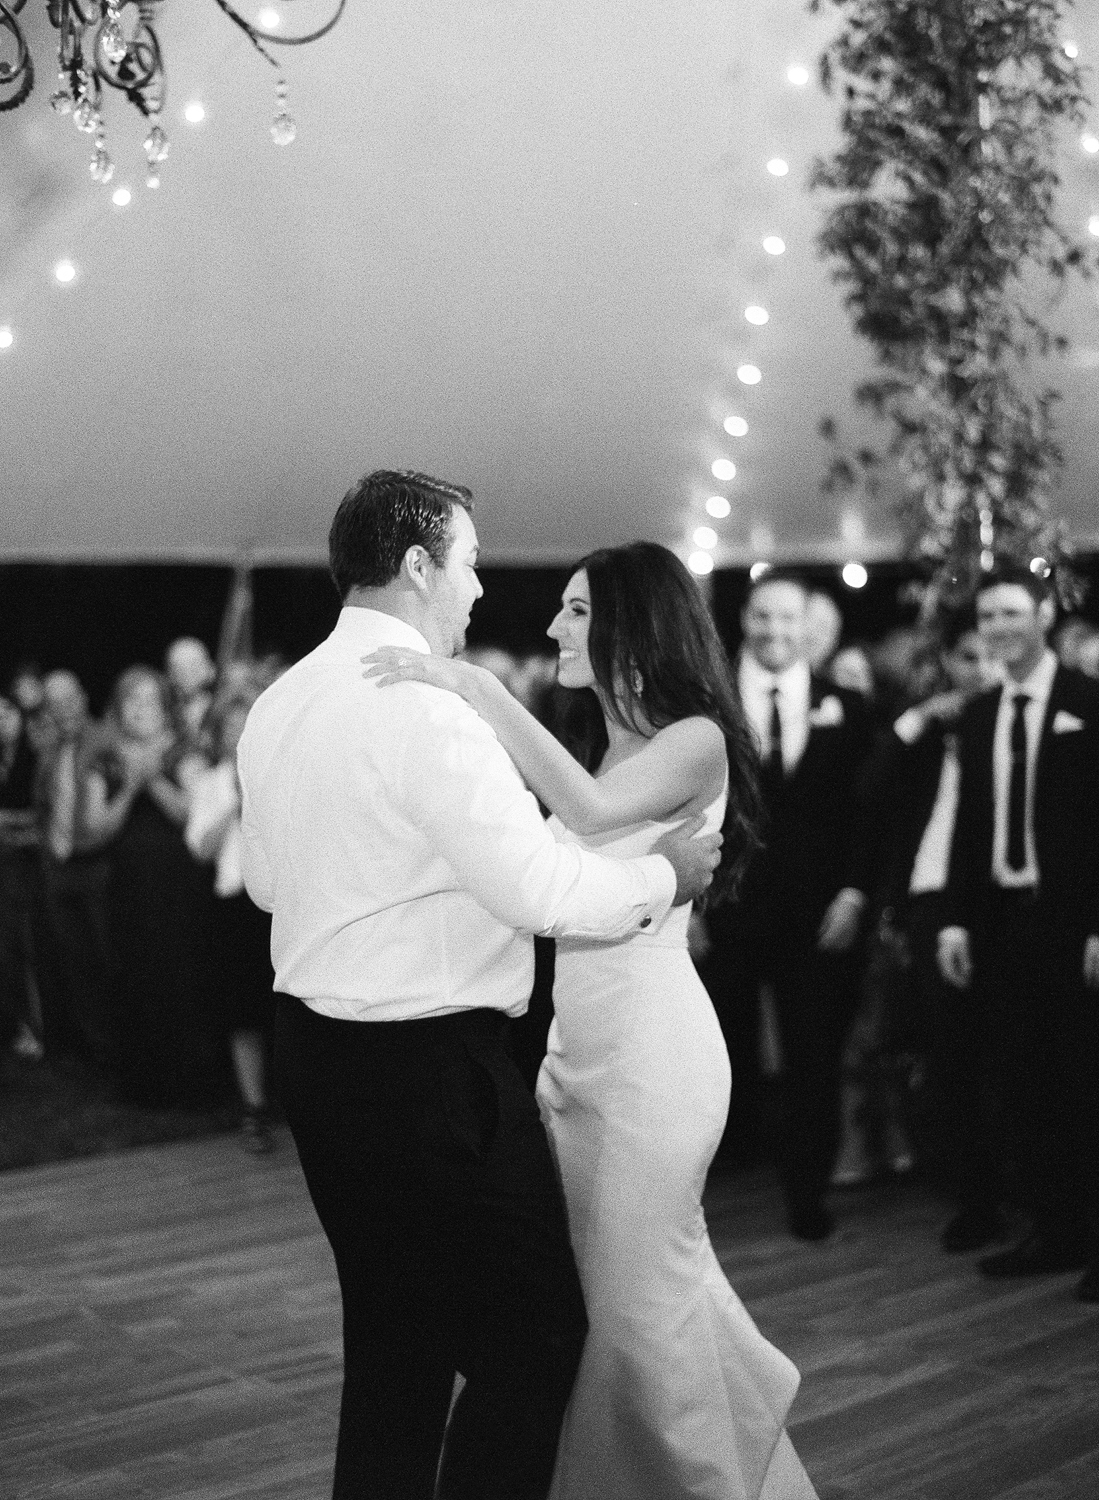 morven park wedding, black and white film photographer, first dance